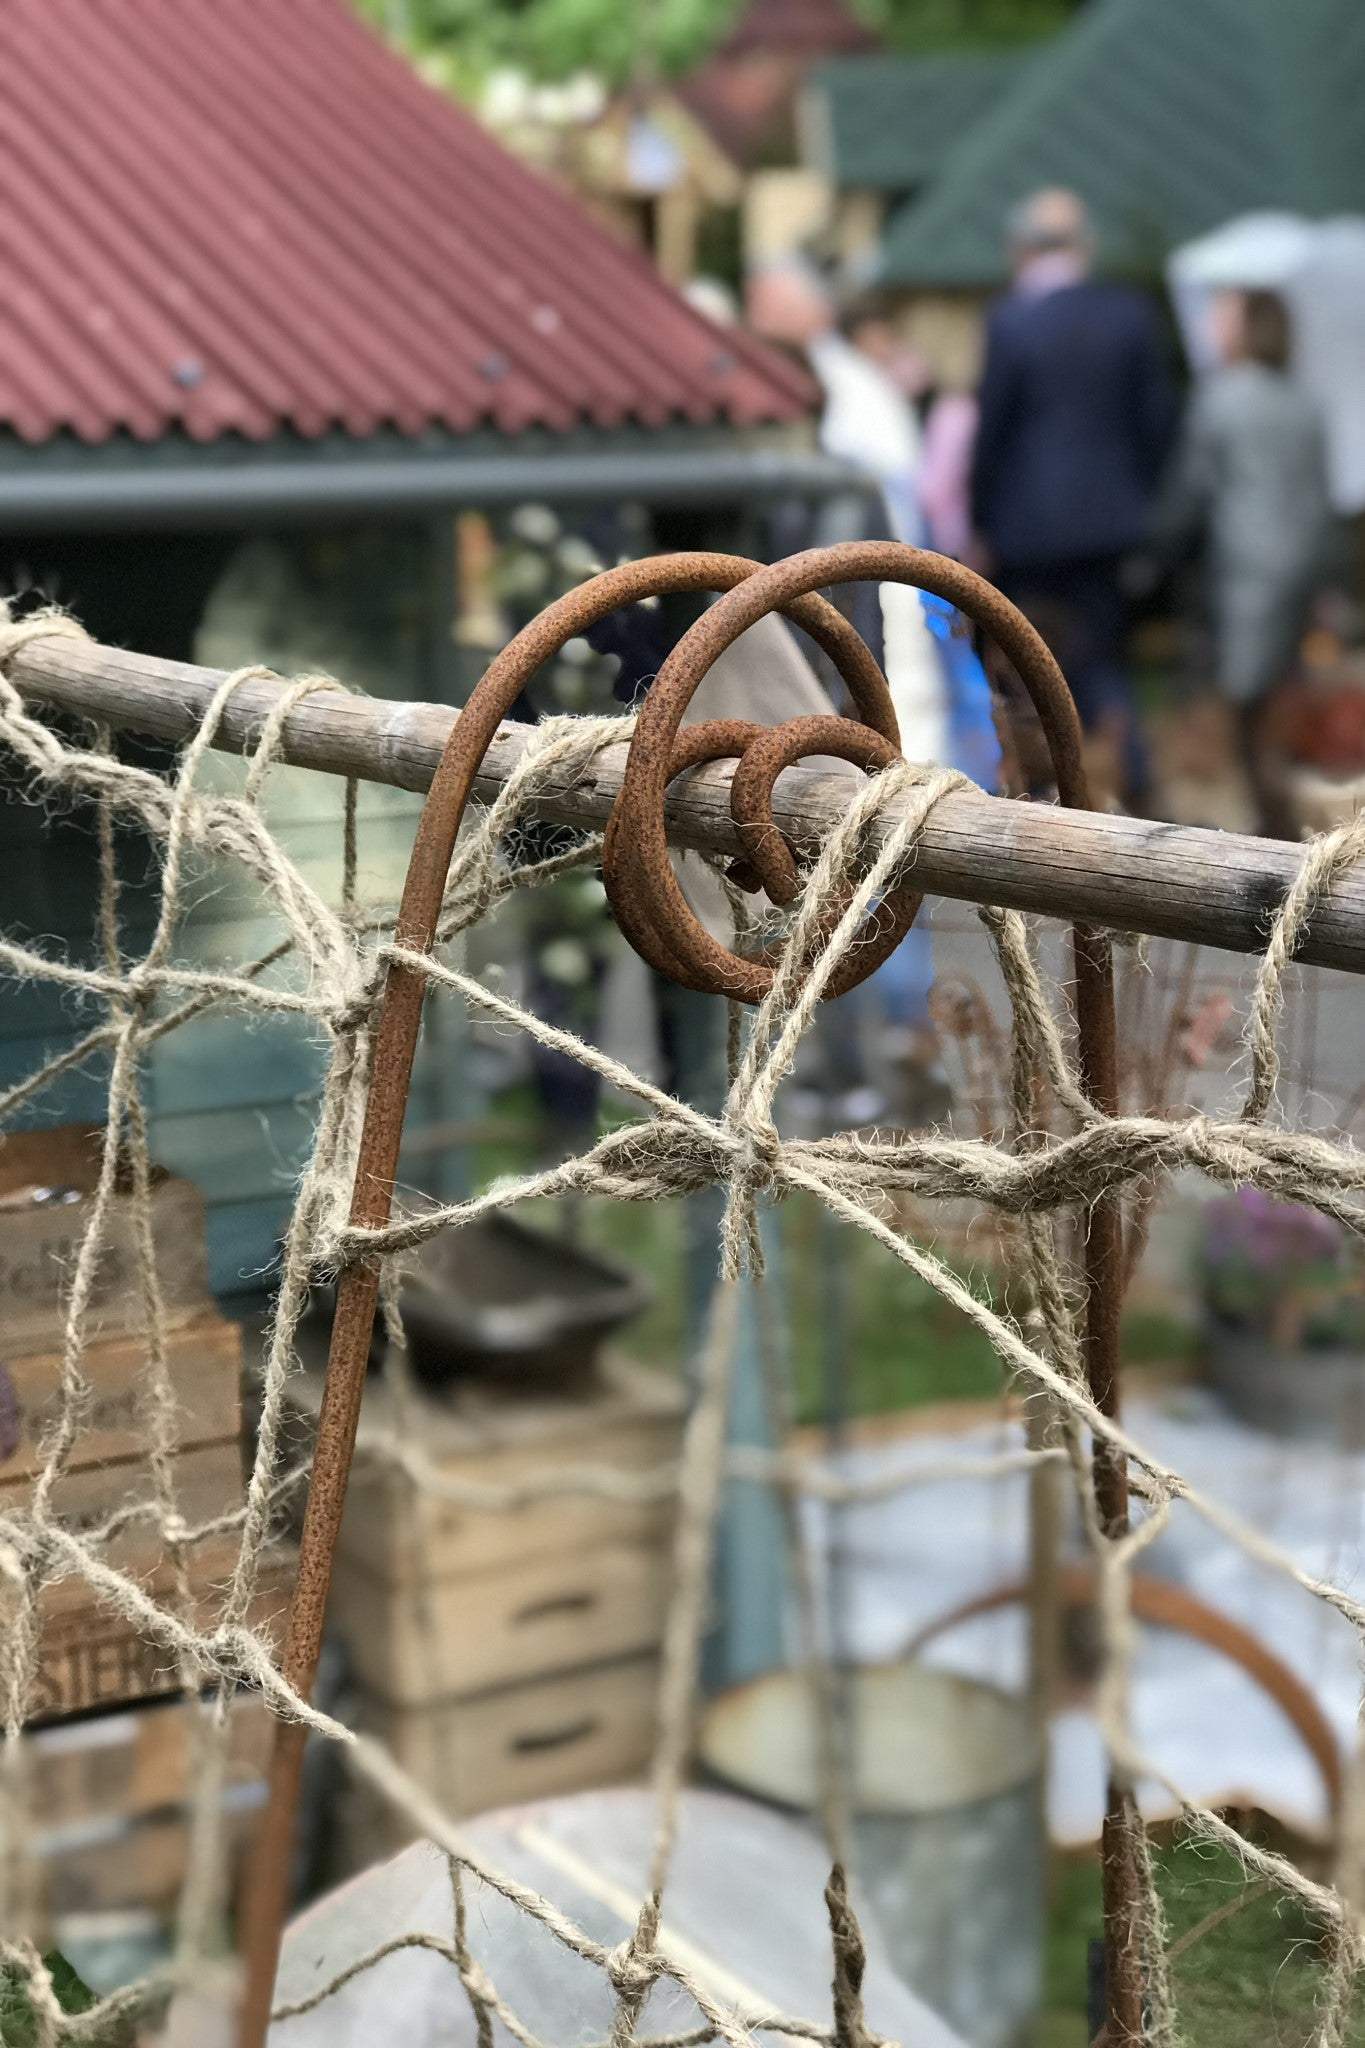 Bean Poles - seen at RHS Chelsea. Create a frame to support a net, for climbing peas, beans...